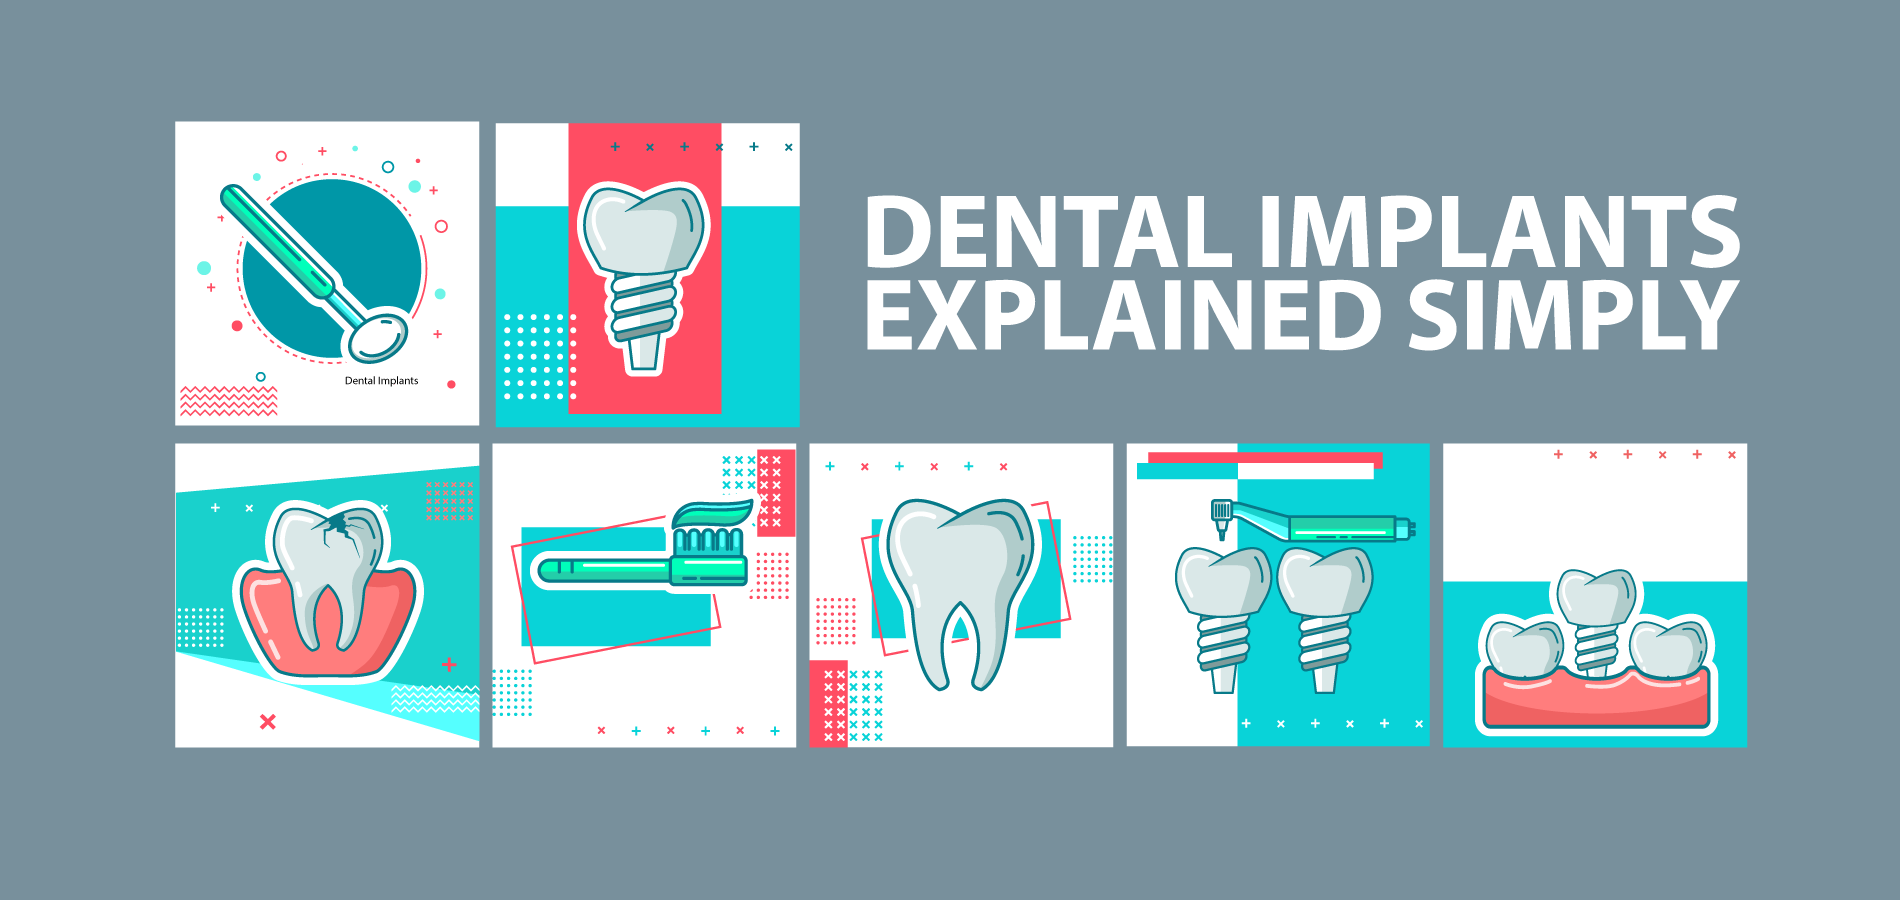 What is the Cost of Dental Implants in Canada?